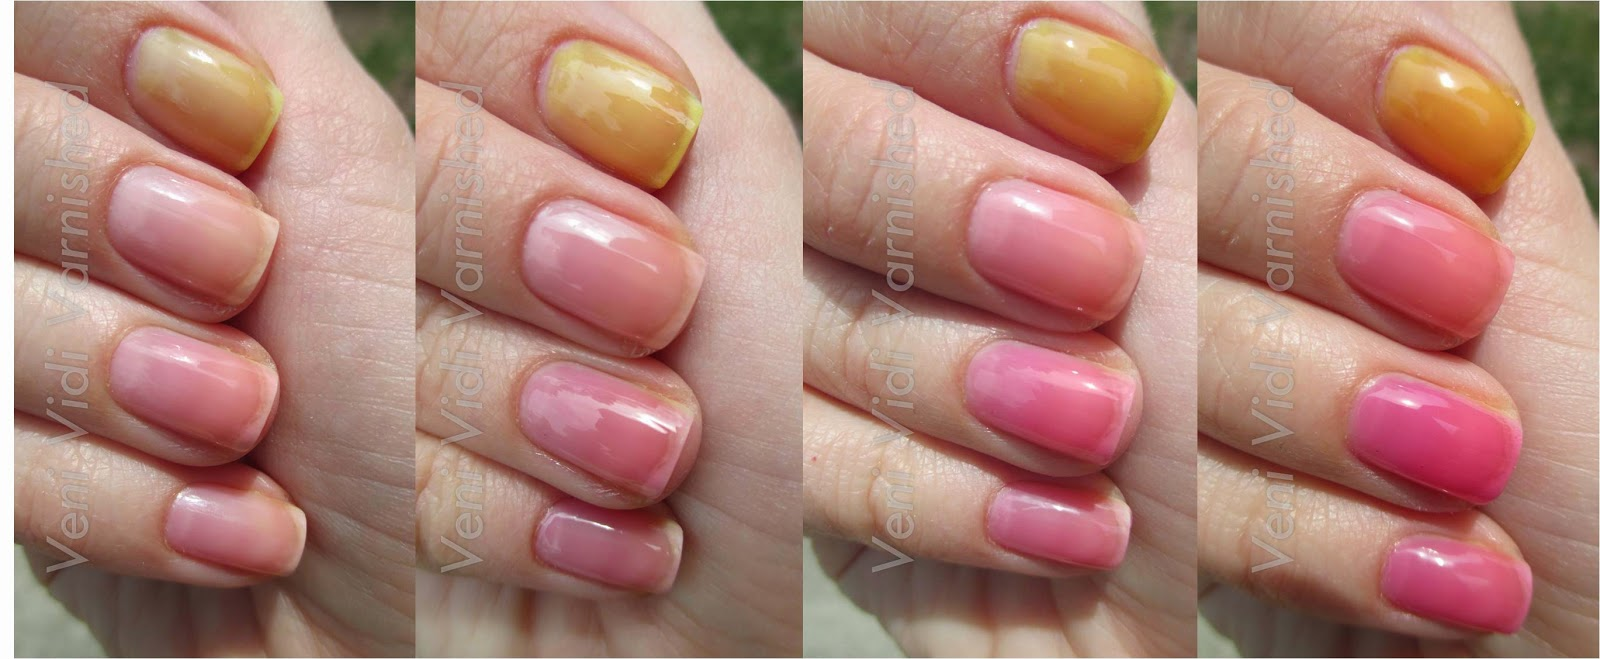 Amberassed, Vitamin D-light, Be Magentale with Me, Water Melon OPI Sheer Tints vs Sally Hansen Palm Beach Jellies Comparison